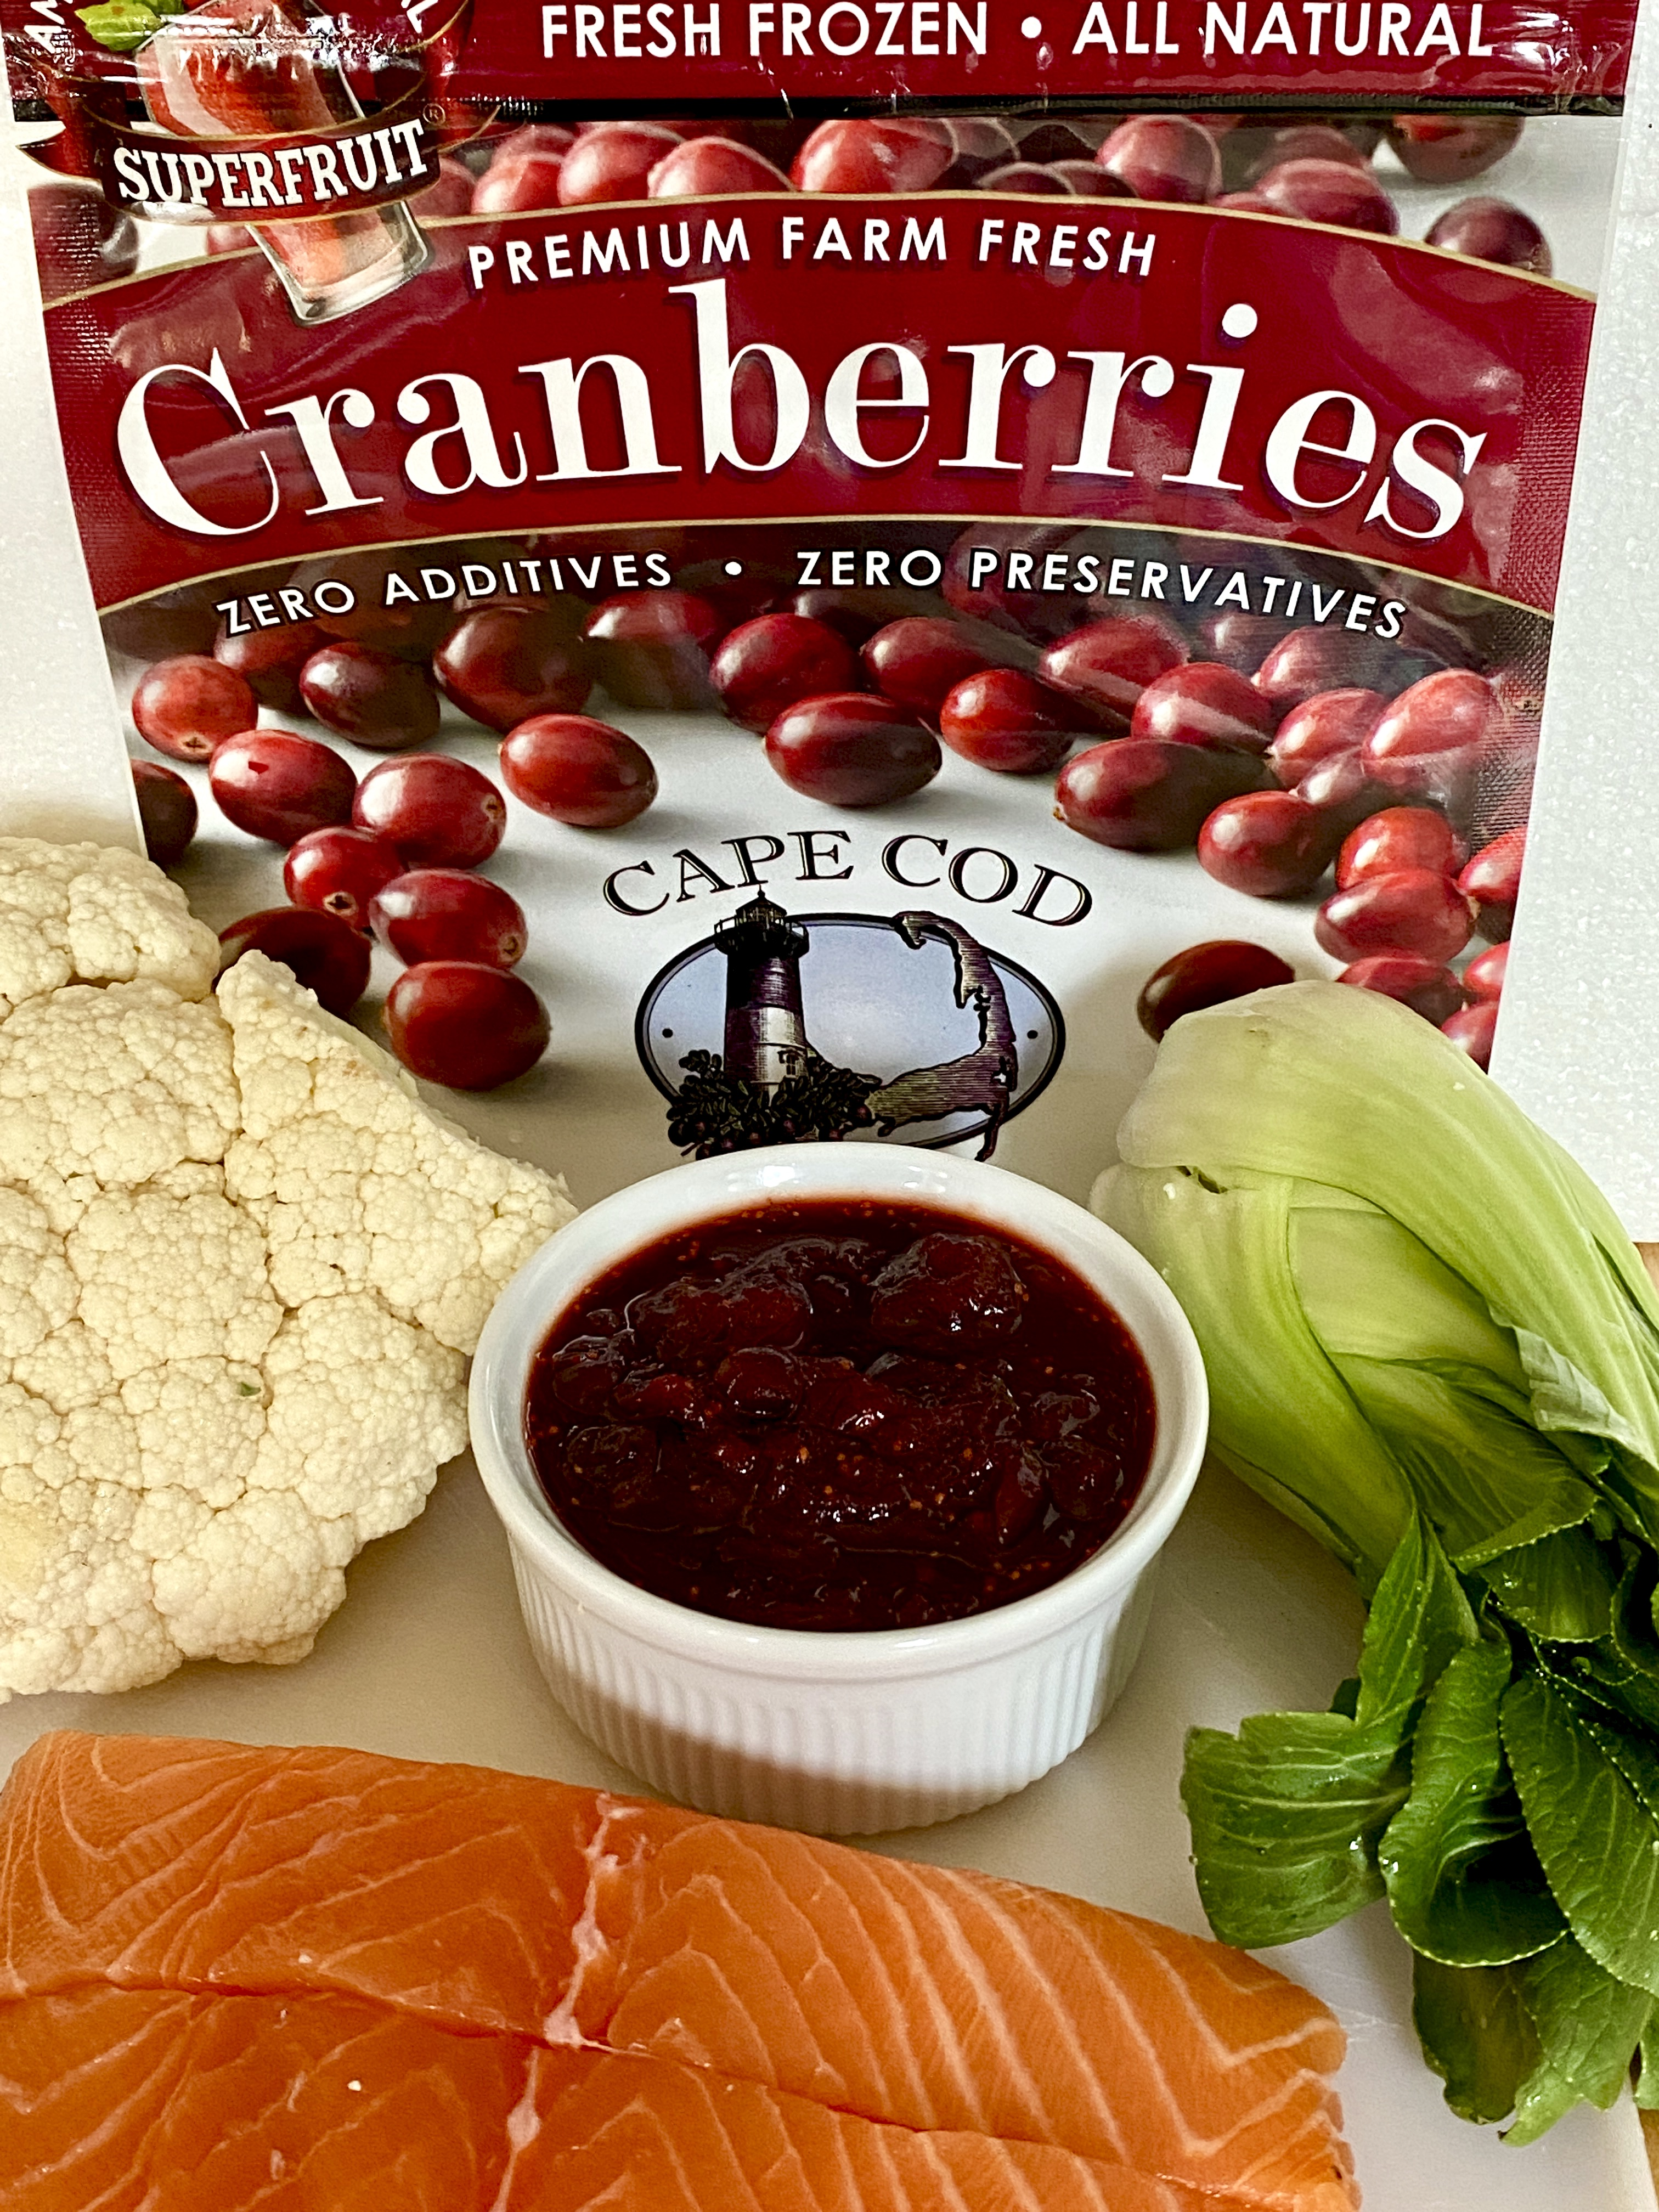 CapeCod Select package with recipe ingredients: salmon, cauliflower, bok choy and cranberries